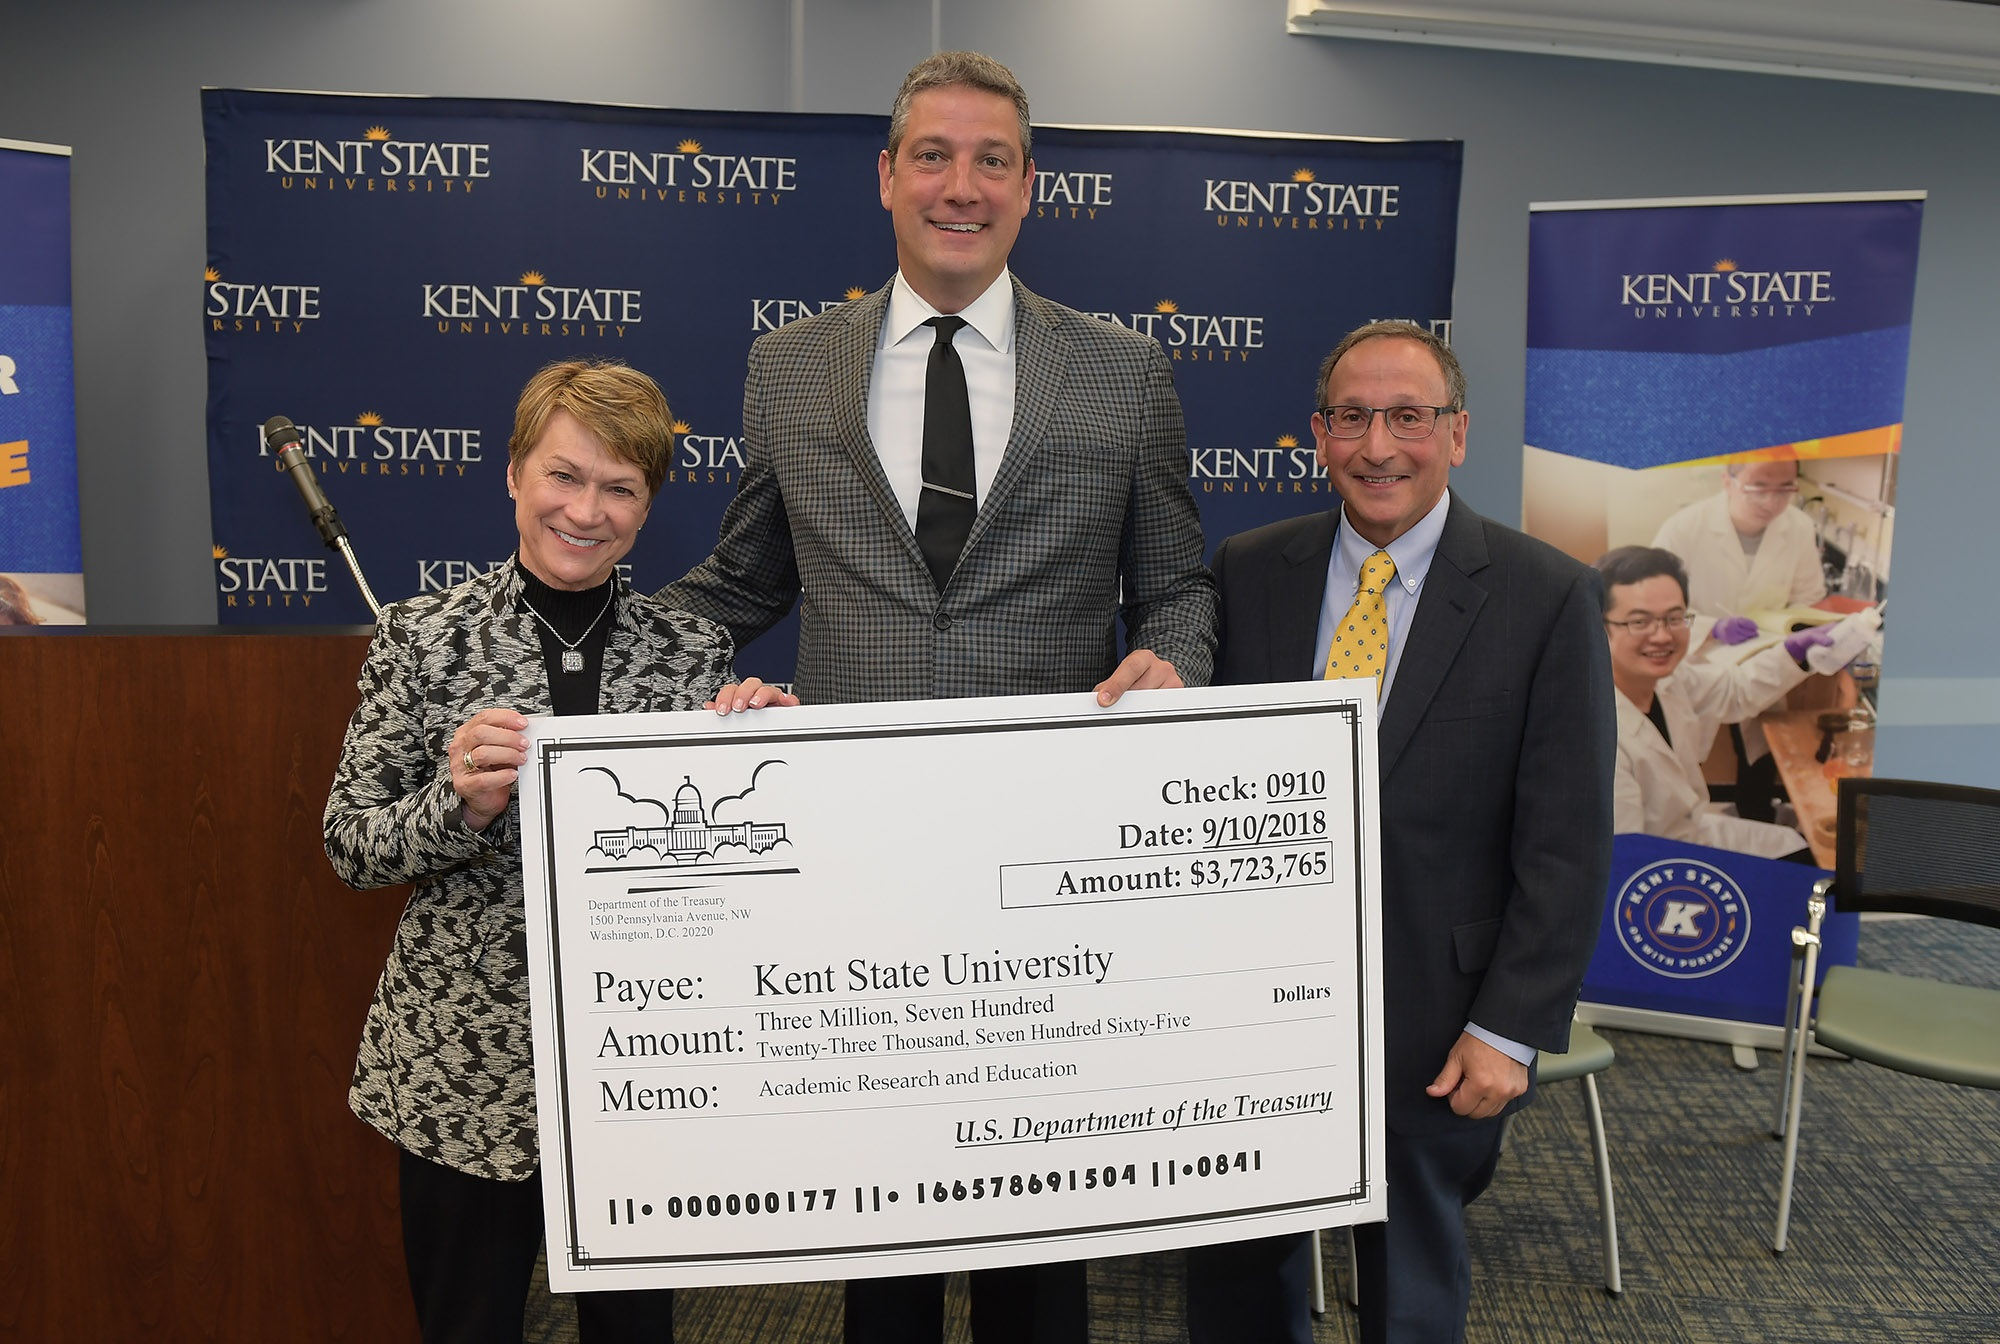 U.S. Rep. Tim Ryan (center) presents a giant check to Kent State University President Beverly Warren (left) and Kent State Vice President for Research and Sponsored Programs Paul DiCorleto (right).